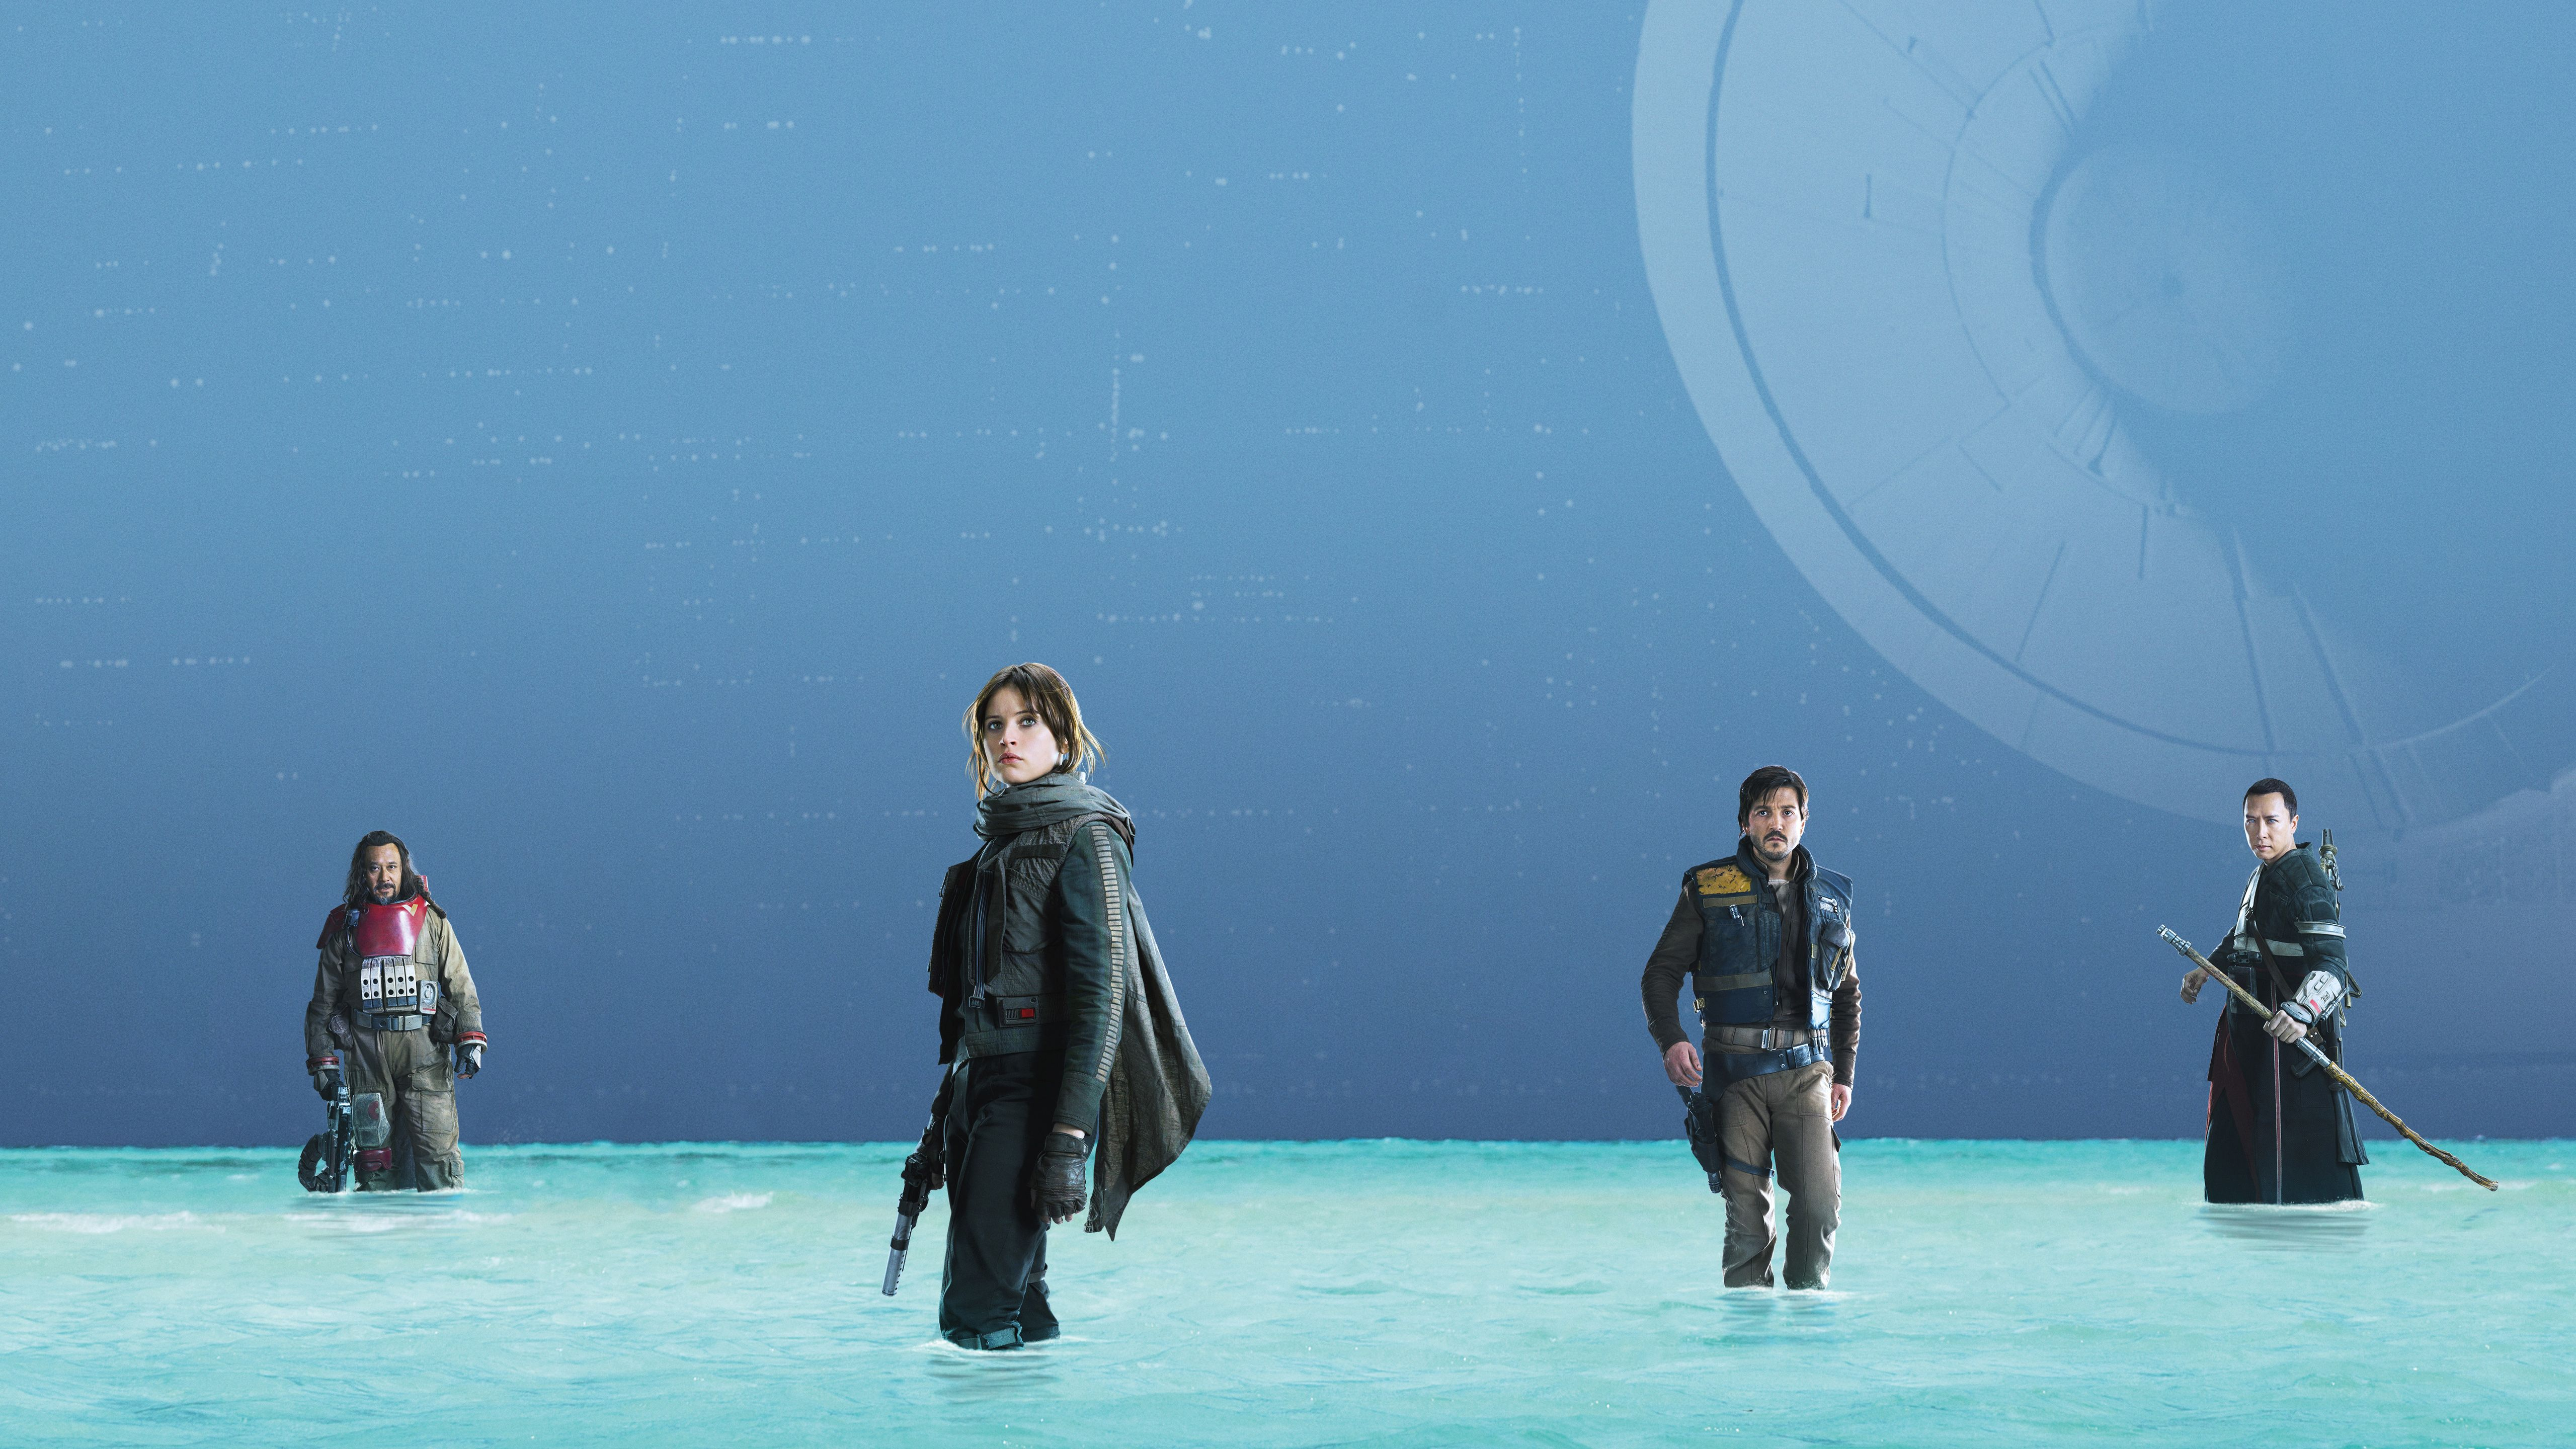 Rogue One Wallpapers Top Free Rogue One Backgrounds Wallpaperaccess